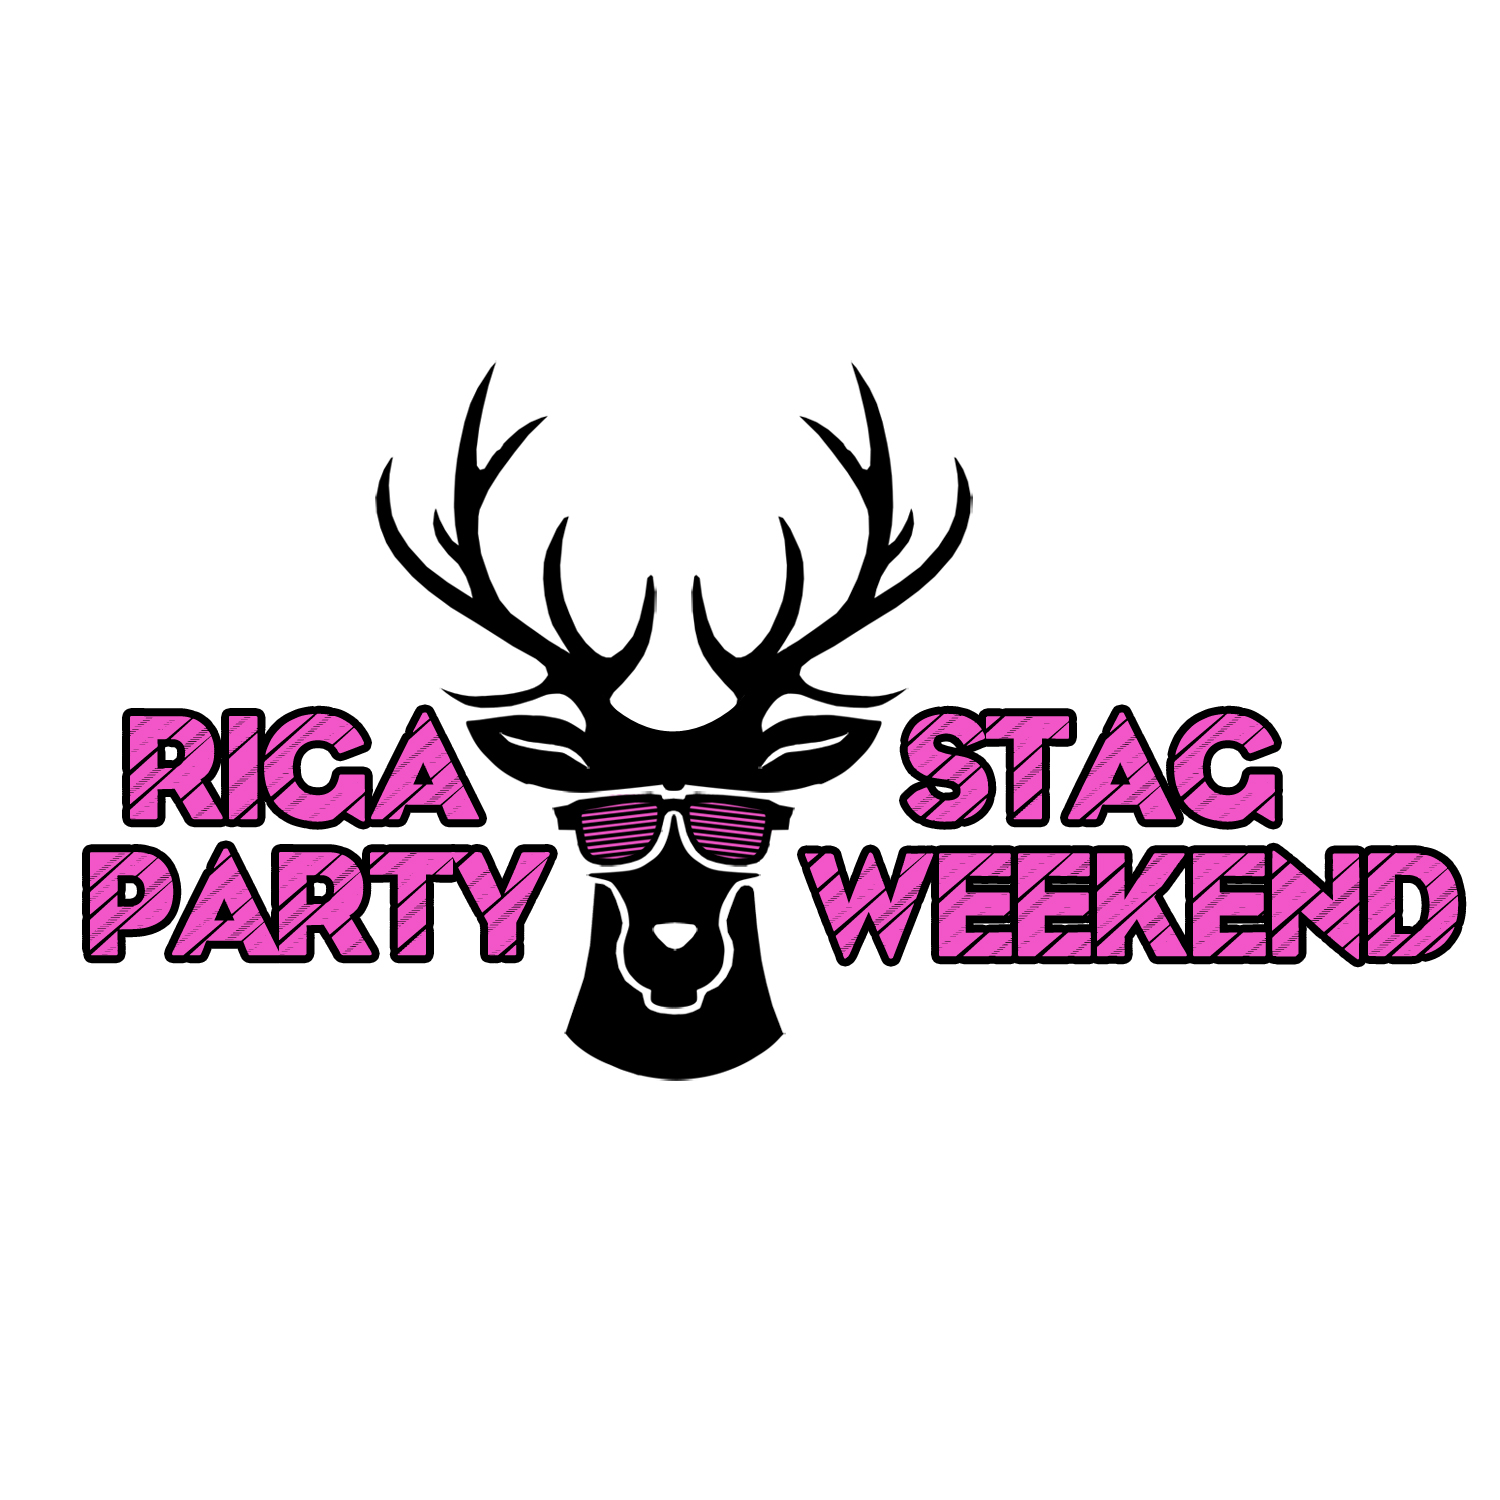 Riga Stag Party Weekend Amazing Event Management Company In Riga Latvia Issuewire